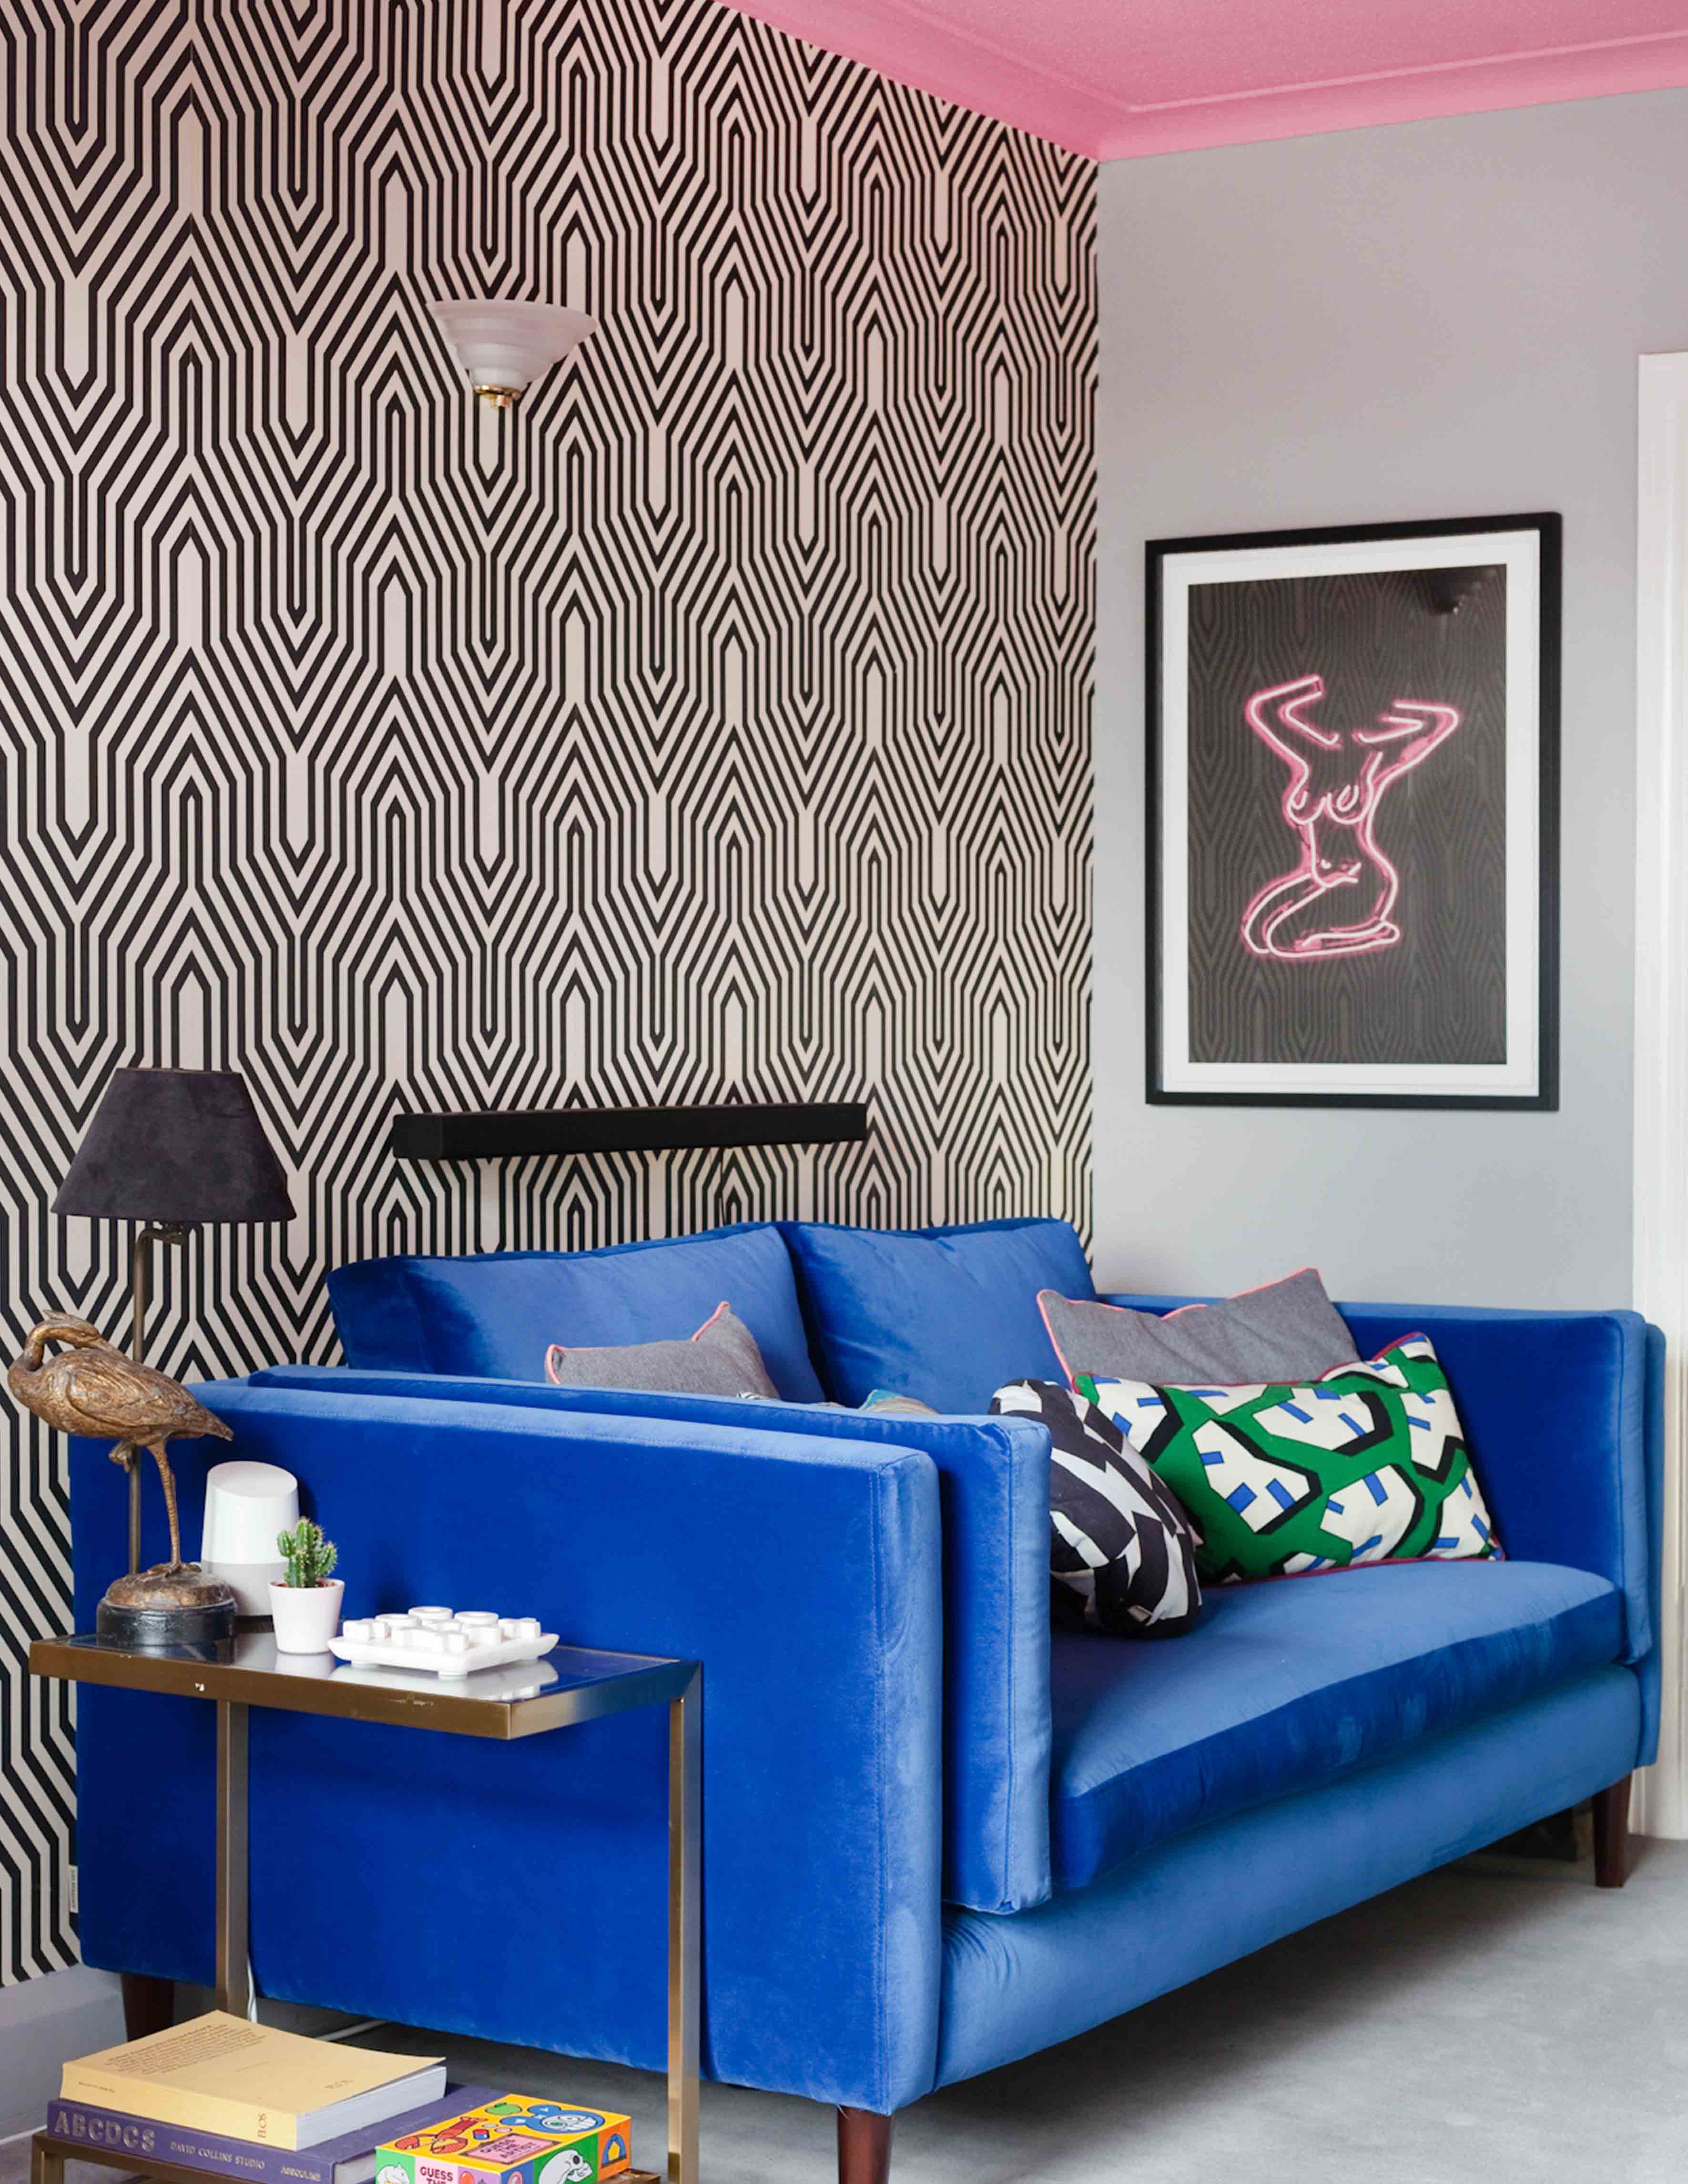 An Art Deco Apartment in South London Decorated to the Max, Design*Sponge